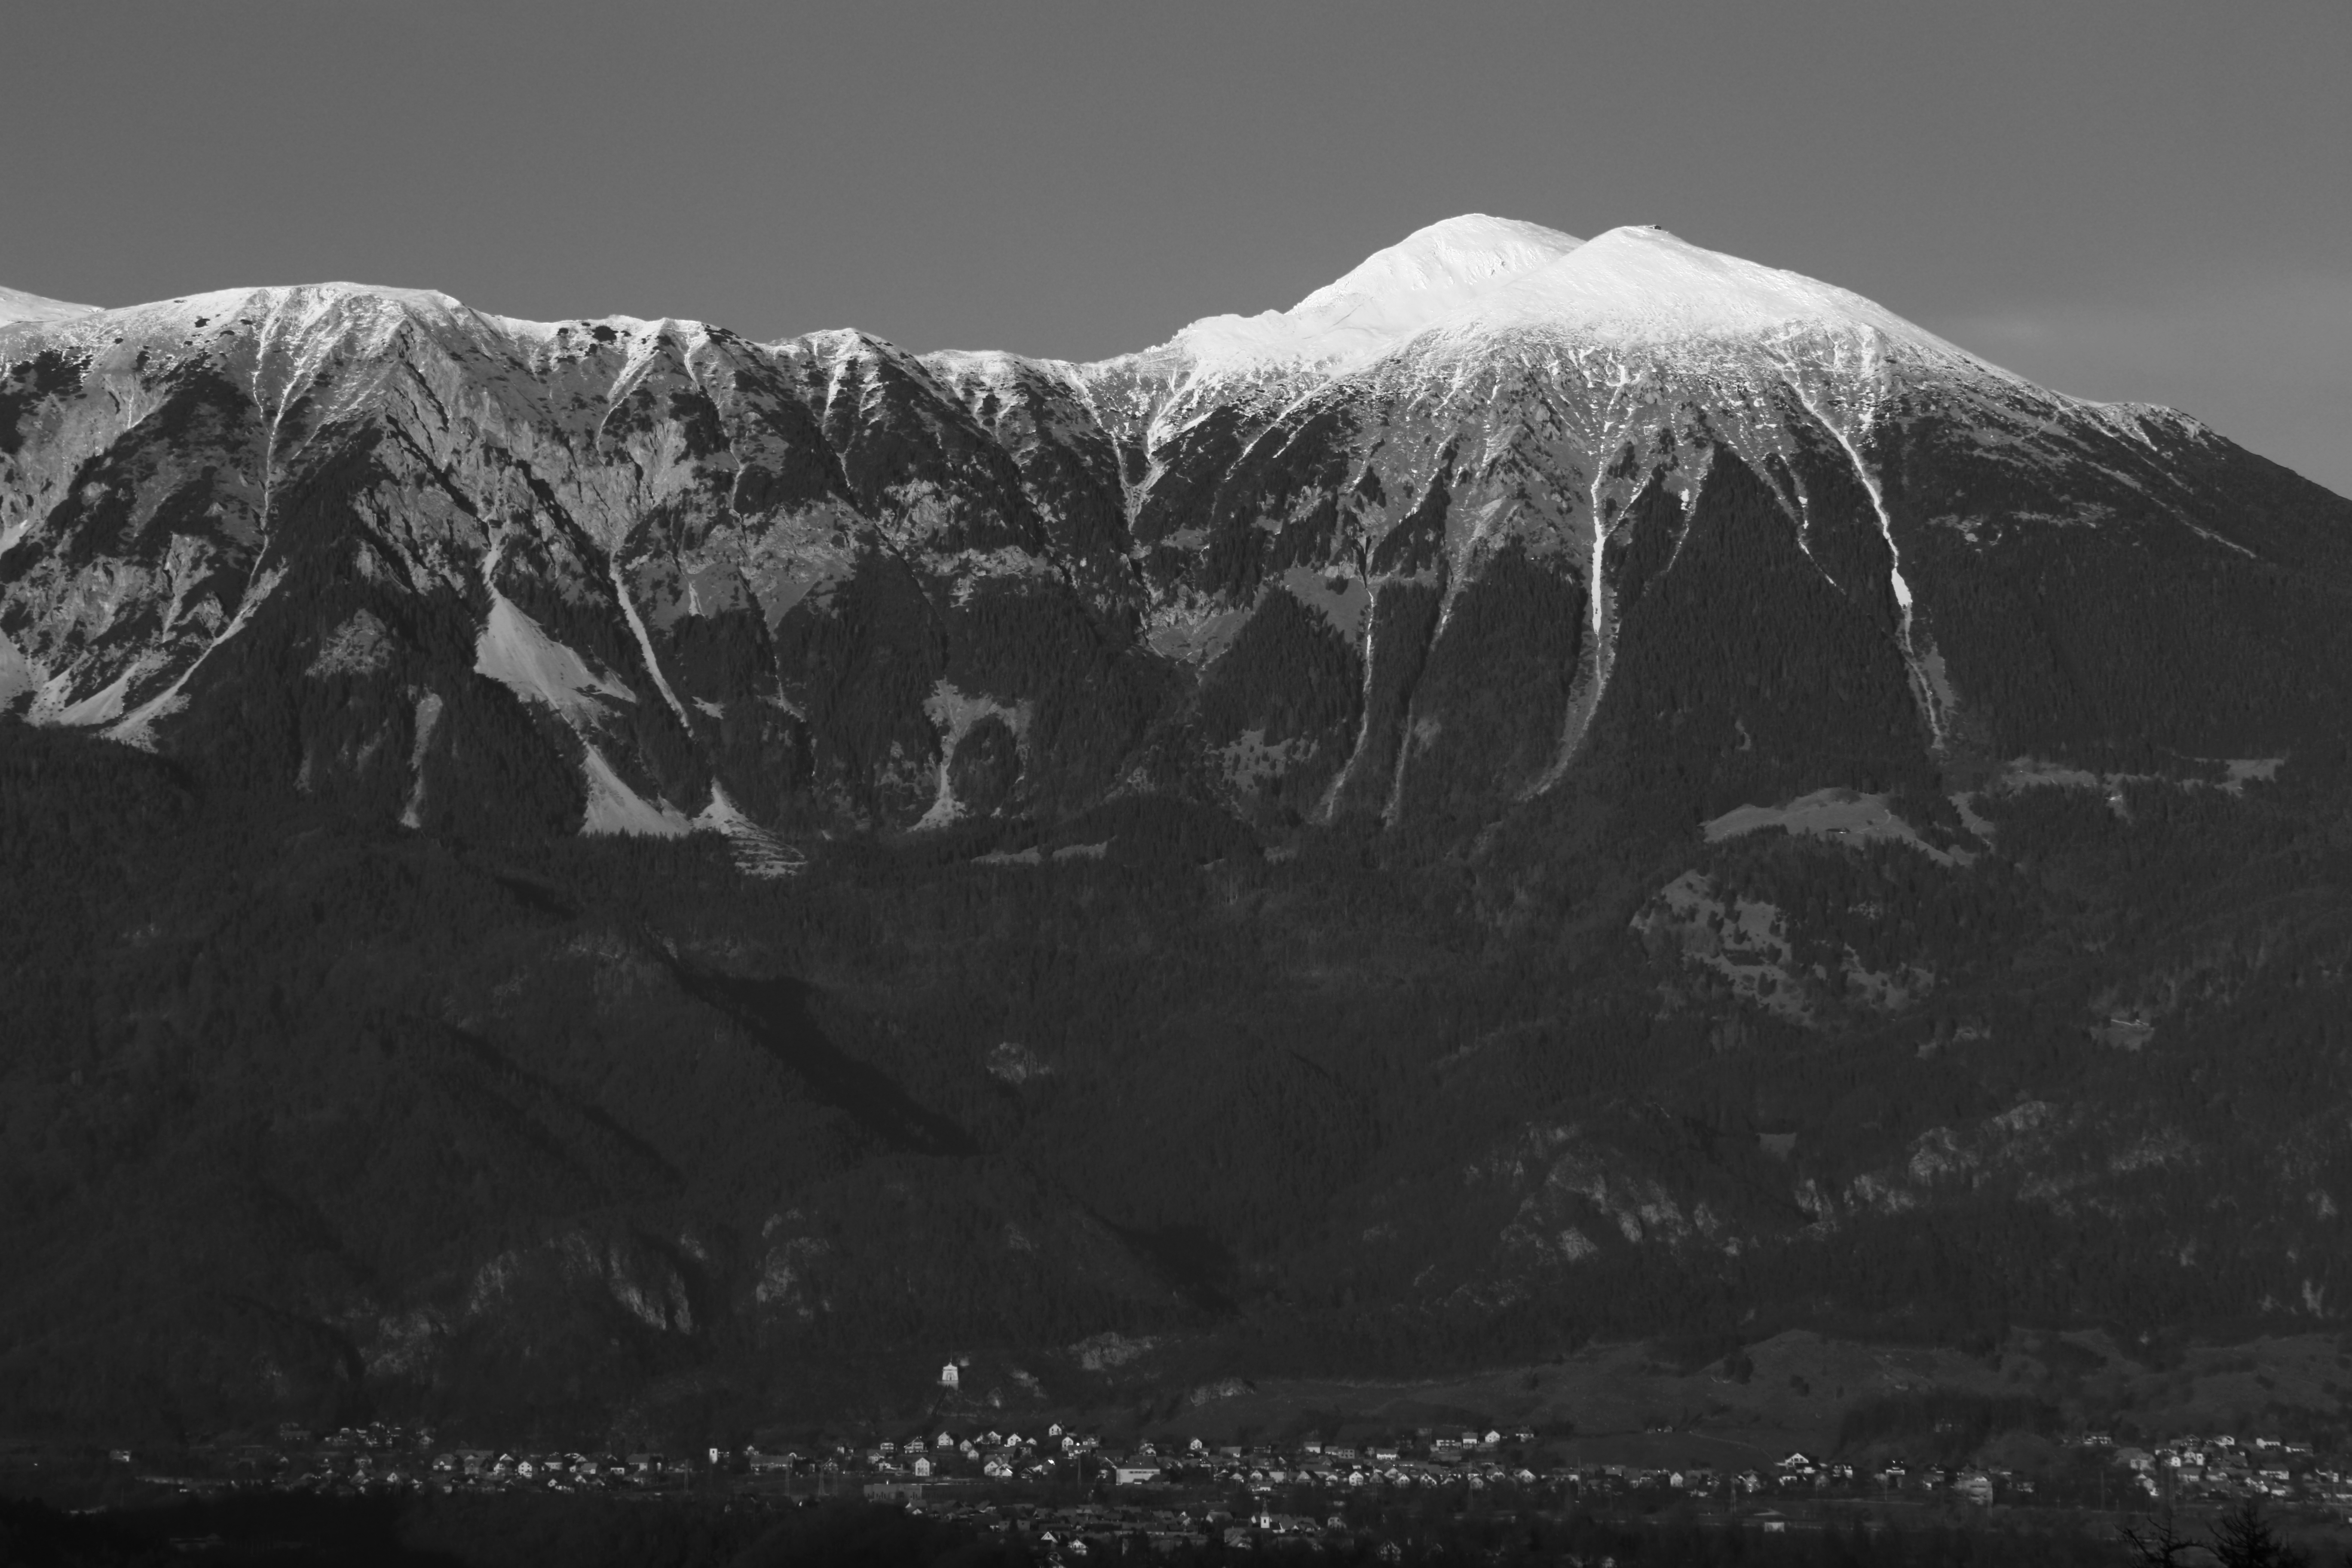 Alps by Matija_Tomc 2